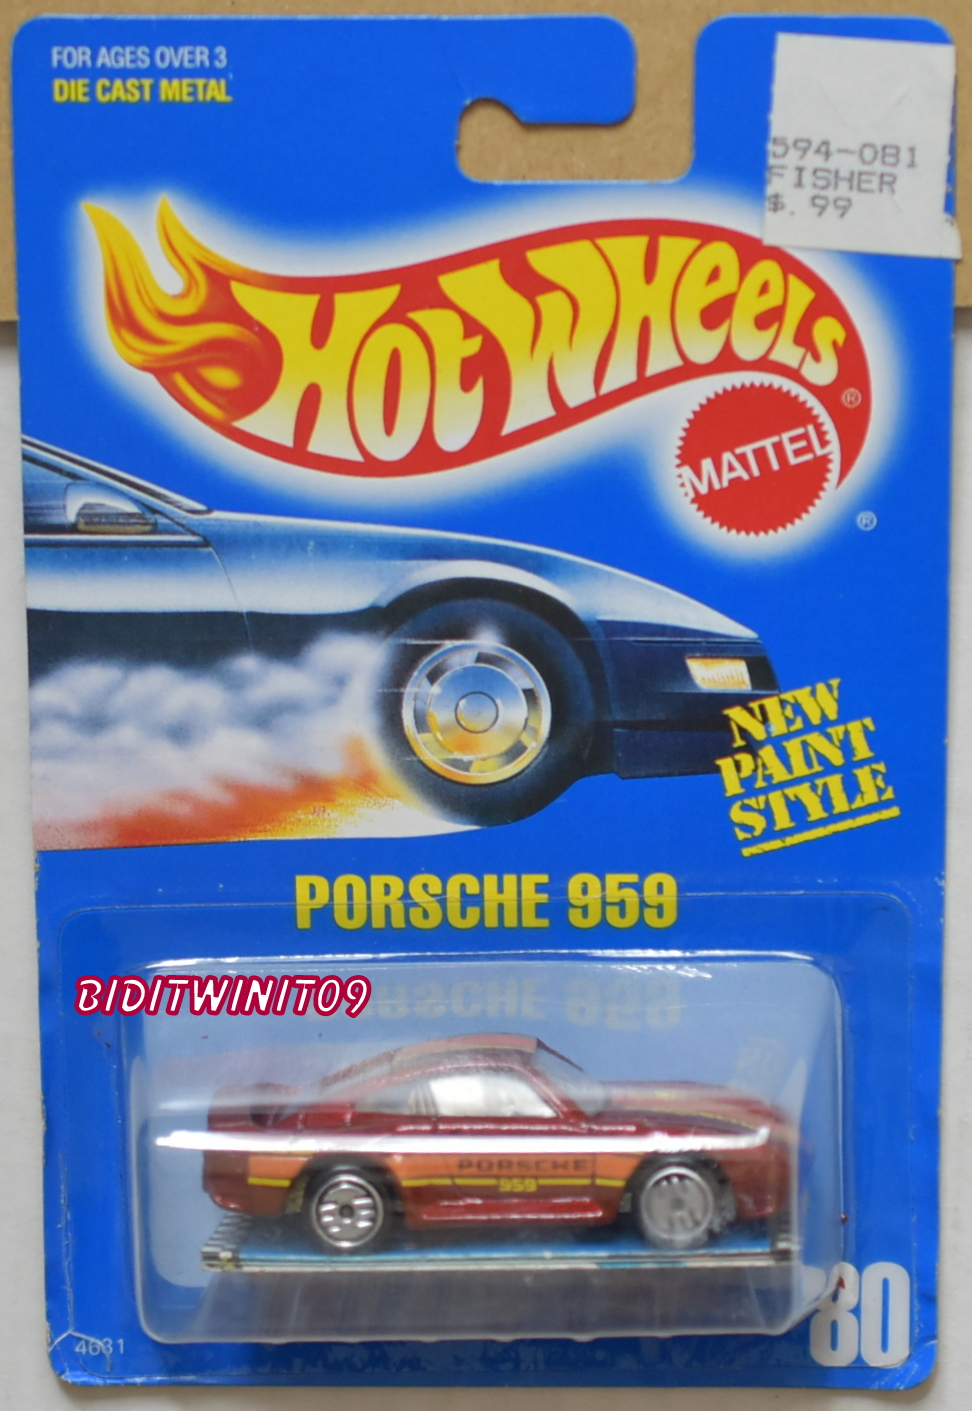 HOT WHEELS 1989 BLUE CARD PORSCHE 959 #80 W/ BOOKLET 23 E+